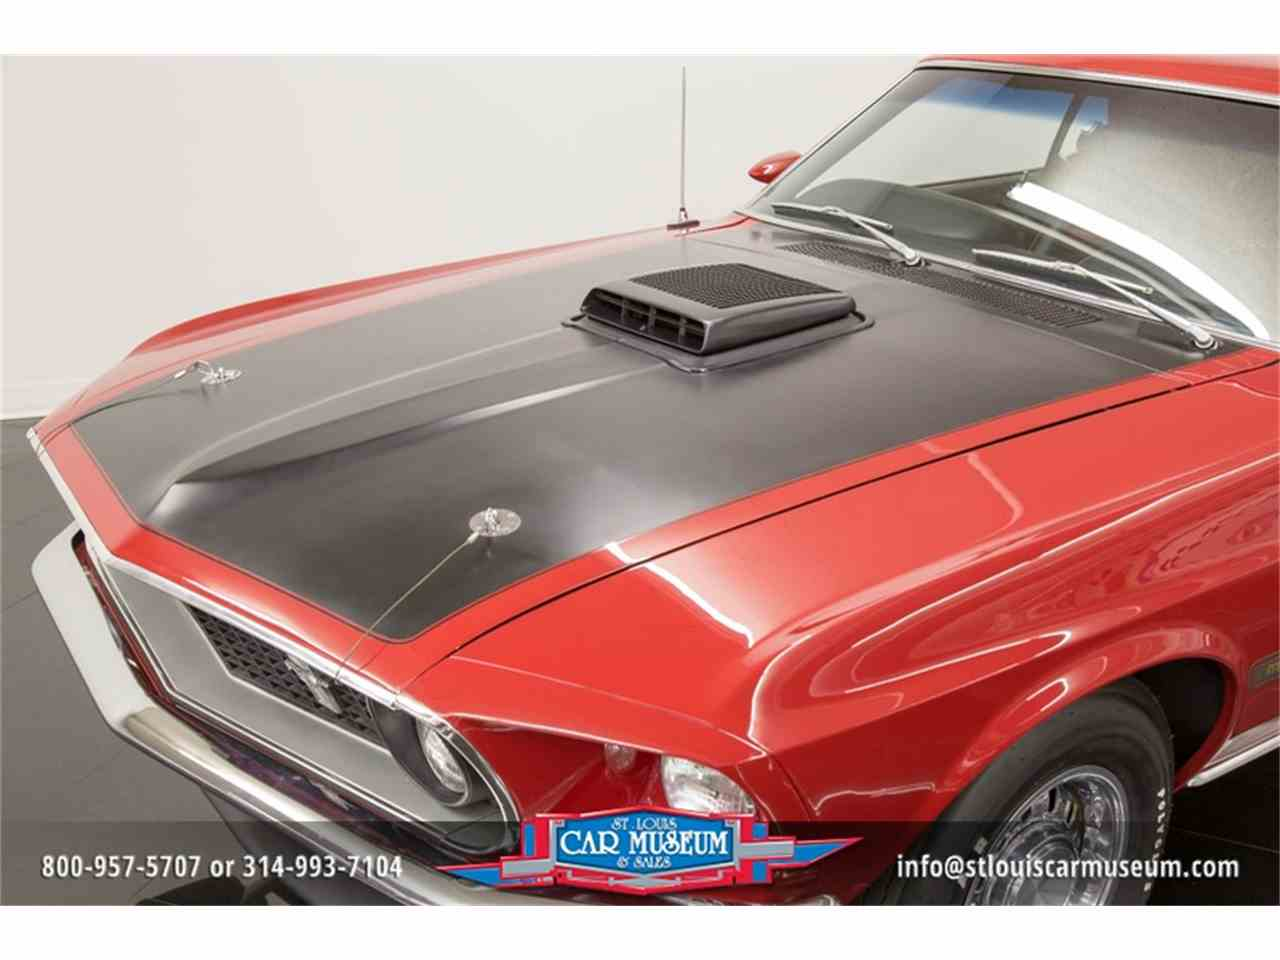 Picture of 1969 ford mustang fastback exterior - Photo 10